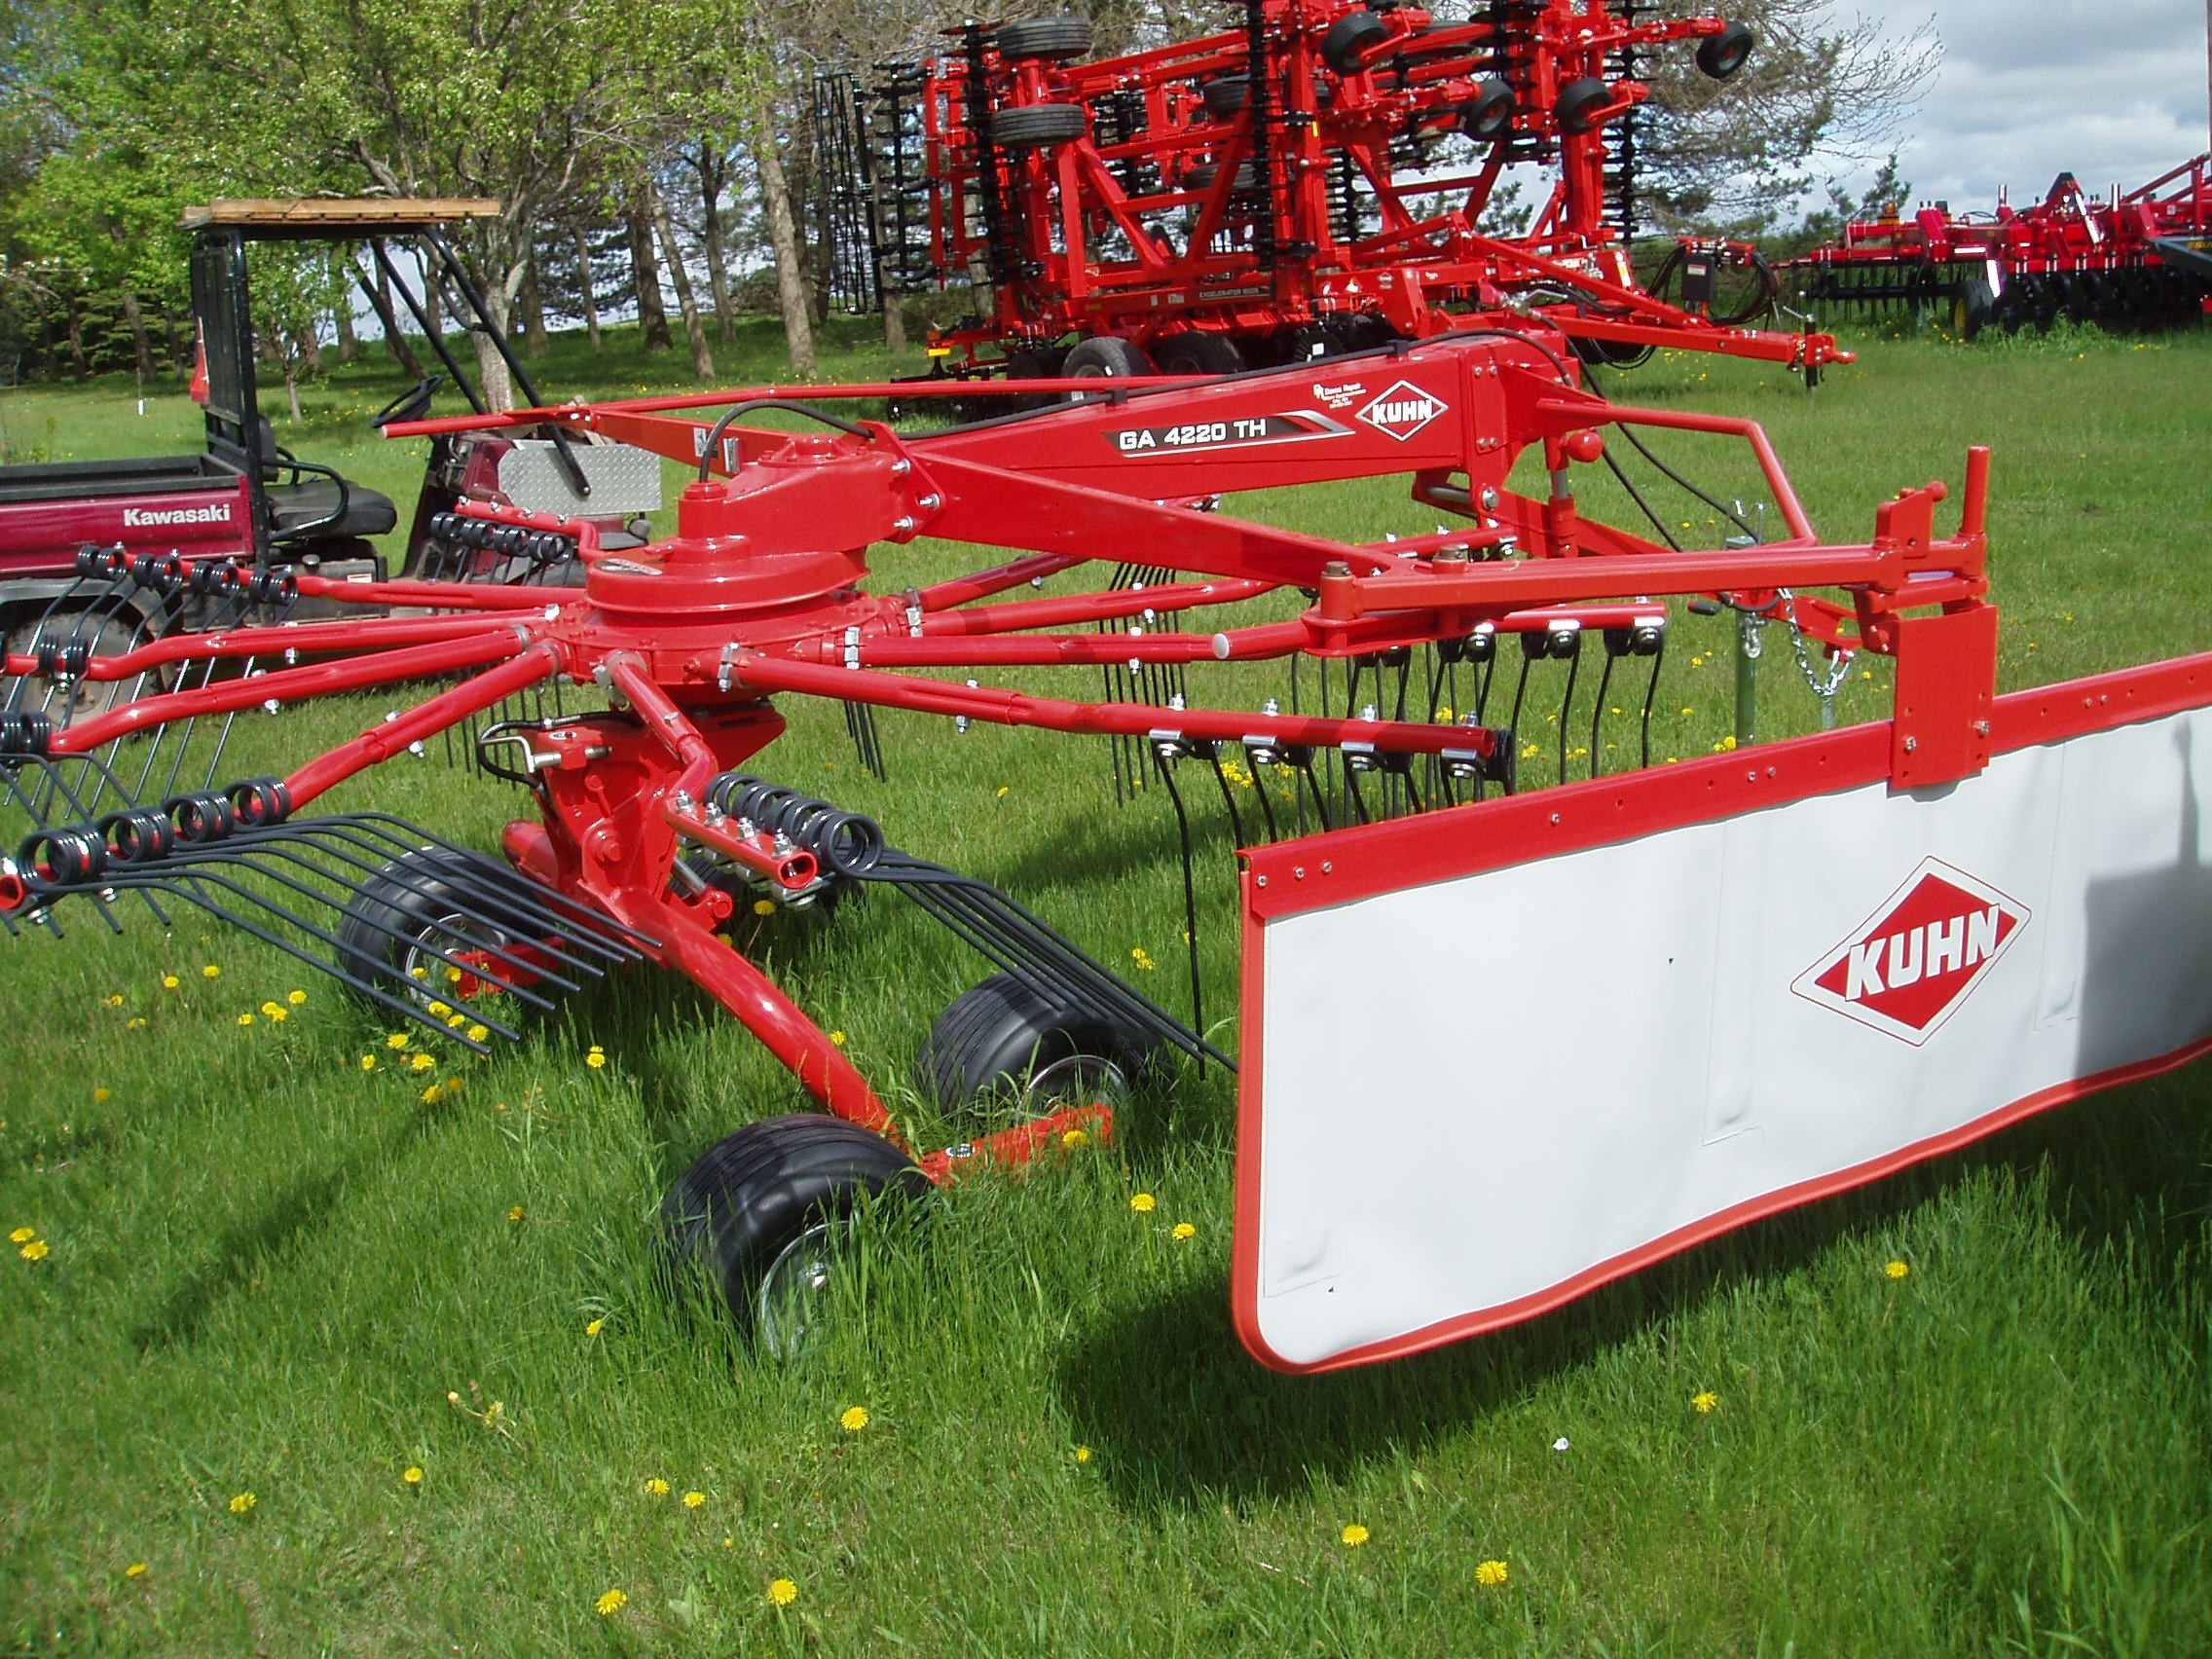 0 Kuhn Ga 4220 Th For Sale in Hills, MN - Equipment Trader